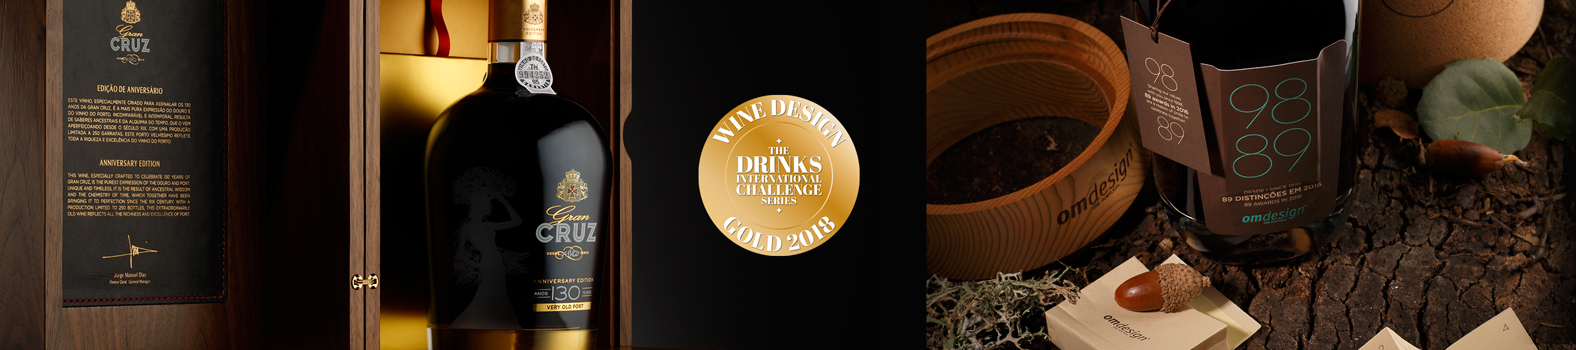 Omdesign distinguida no Wine Design Challenge